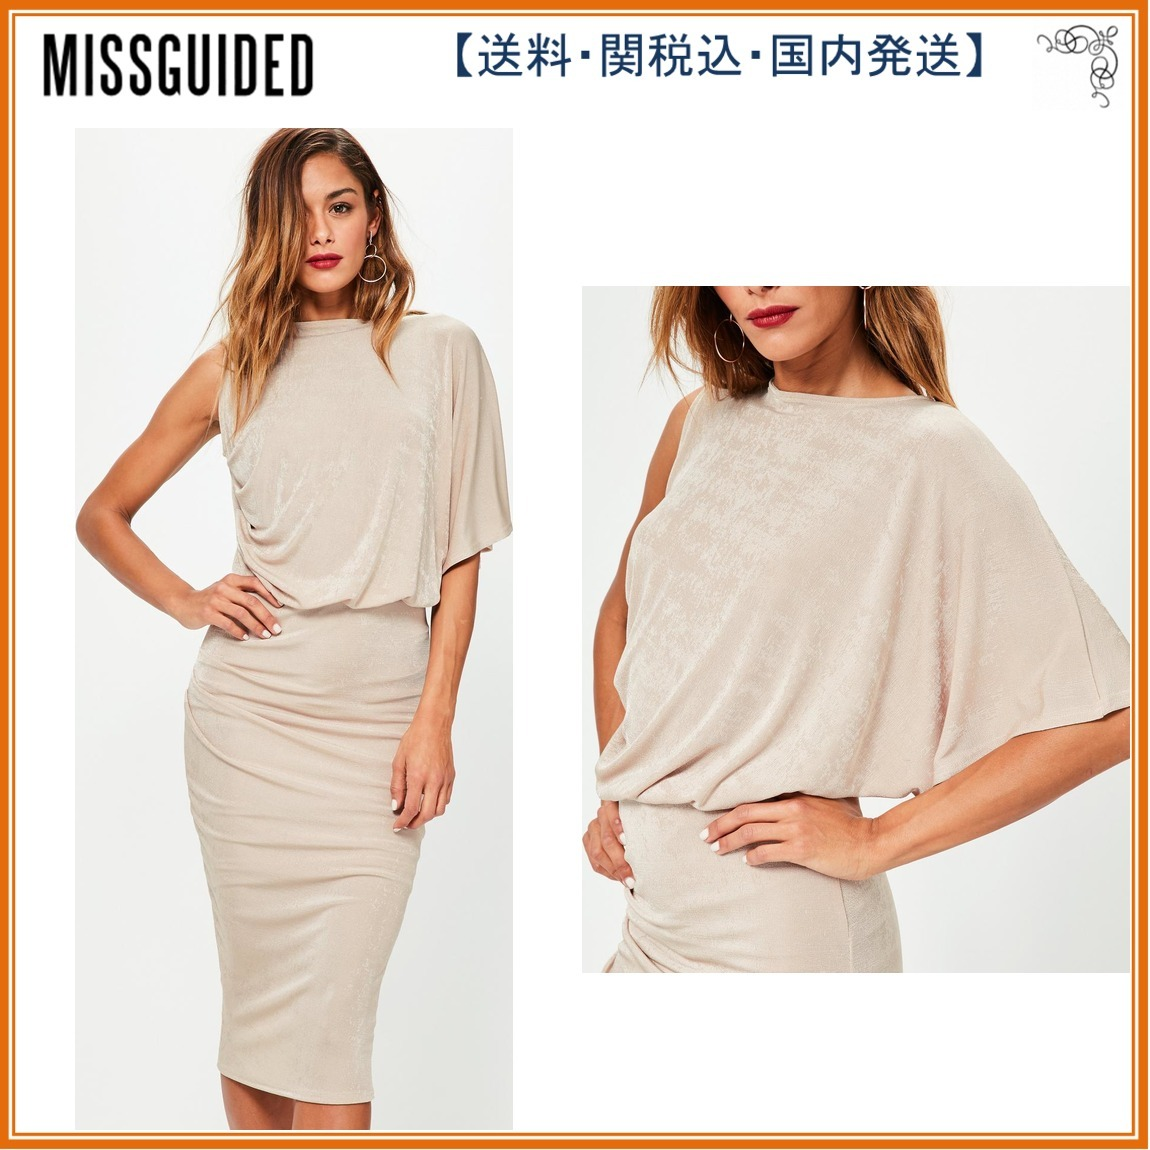 【海外限定】Missguided人気ドレス☆Nude Slinky One Sleeve Ope